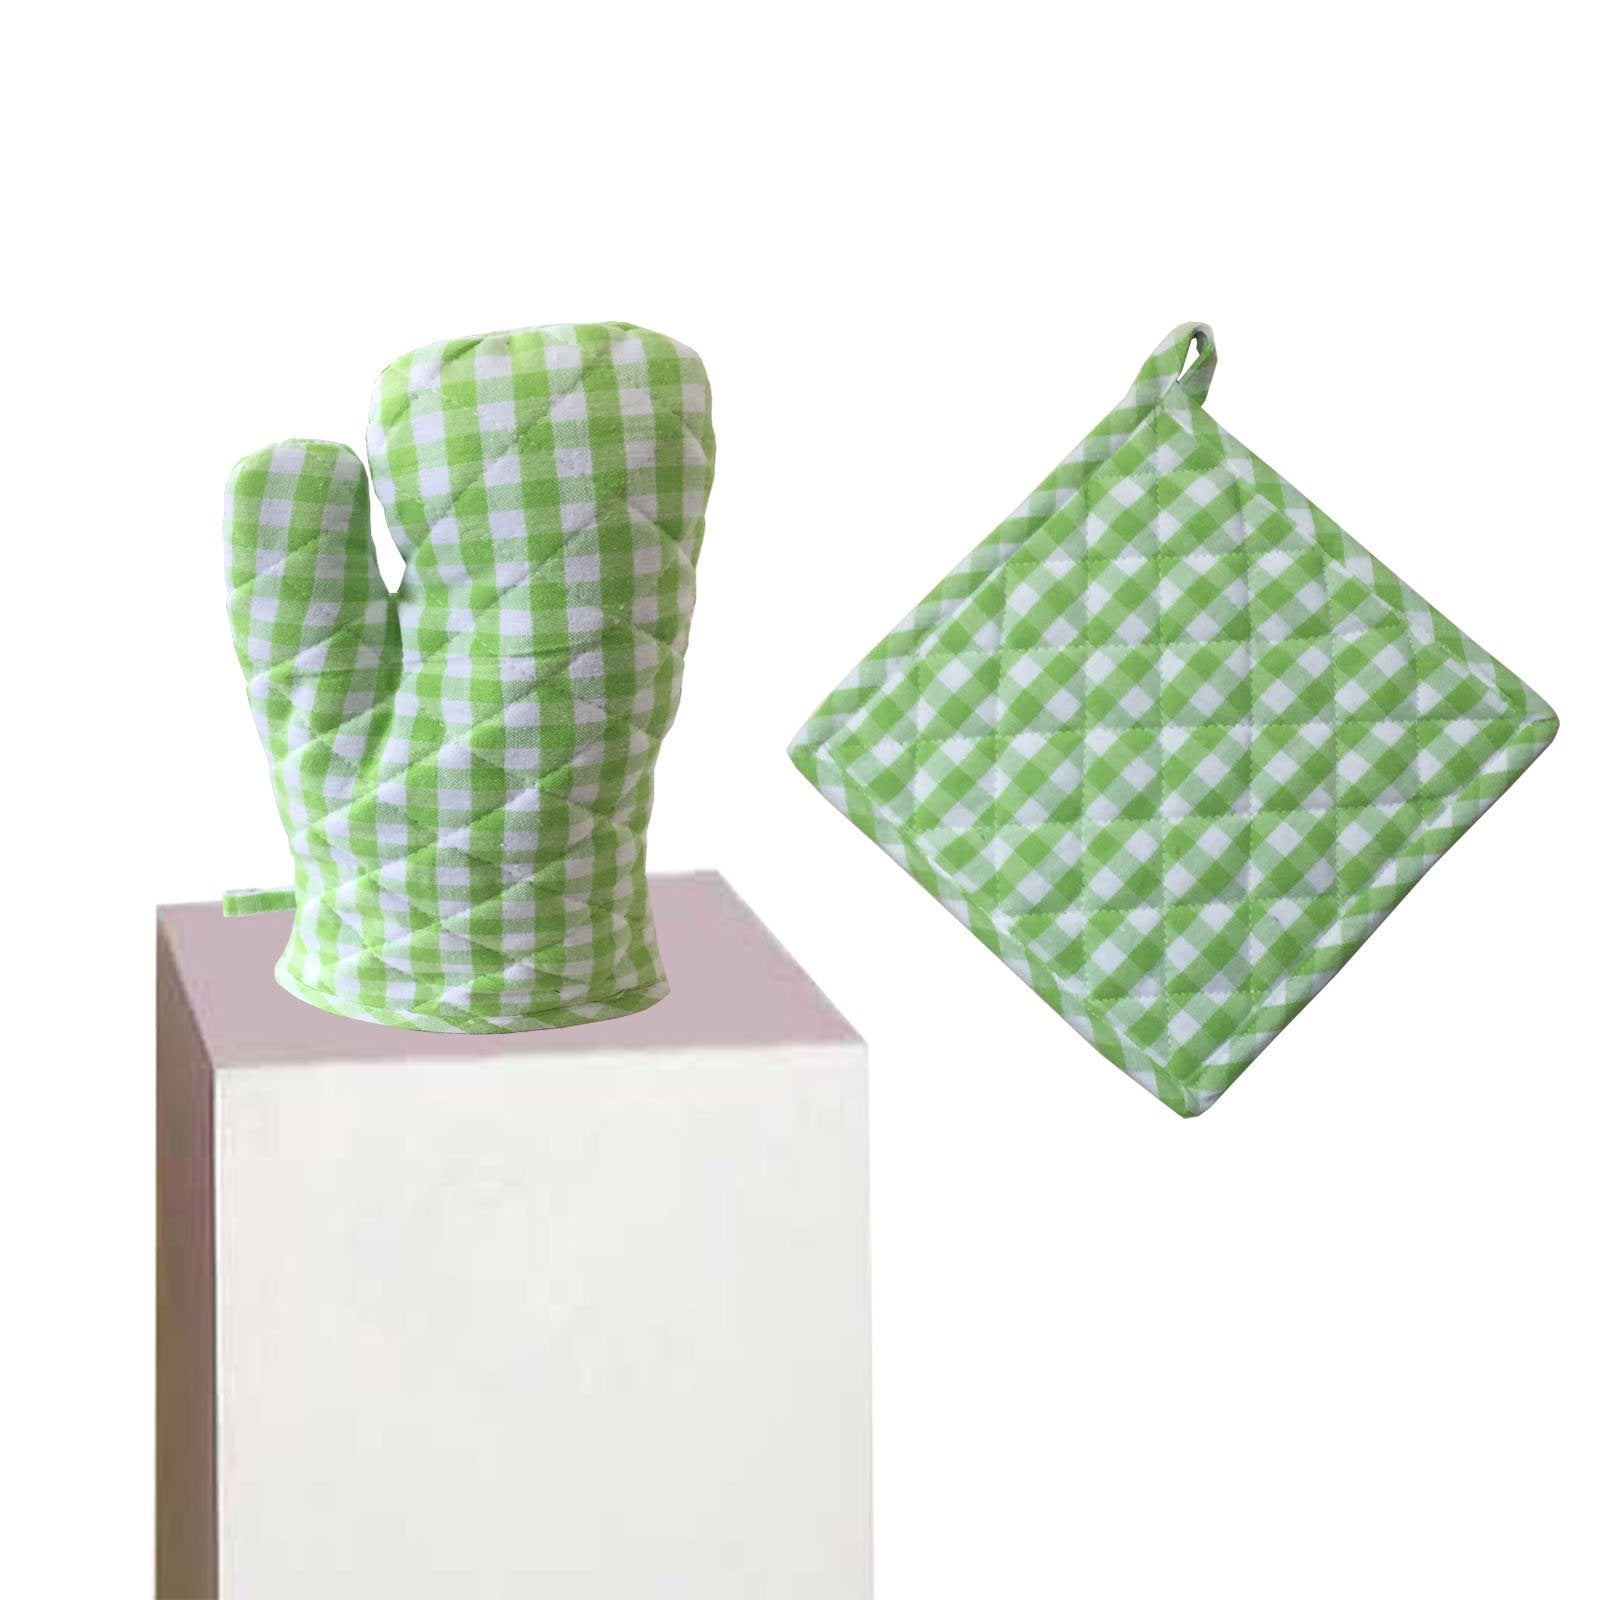 Lushomes Green Small Checks heat resistant Oven Set, Pack of 2 (1 Pot holder, Size : 8‰۝x8‰۝ & 1 Oven Mitten, Size : 7‰۝x13‰۝)